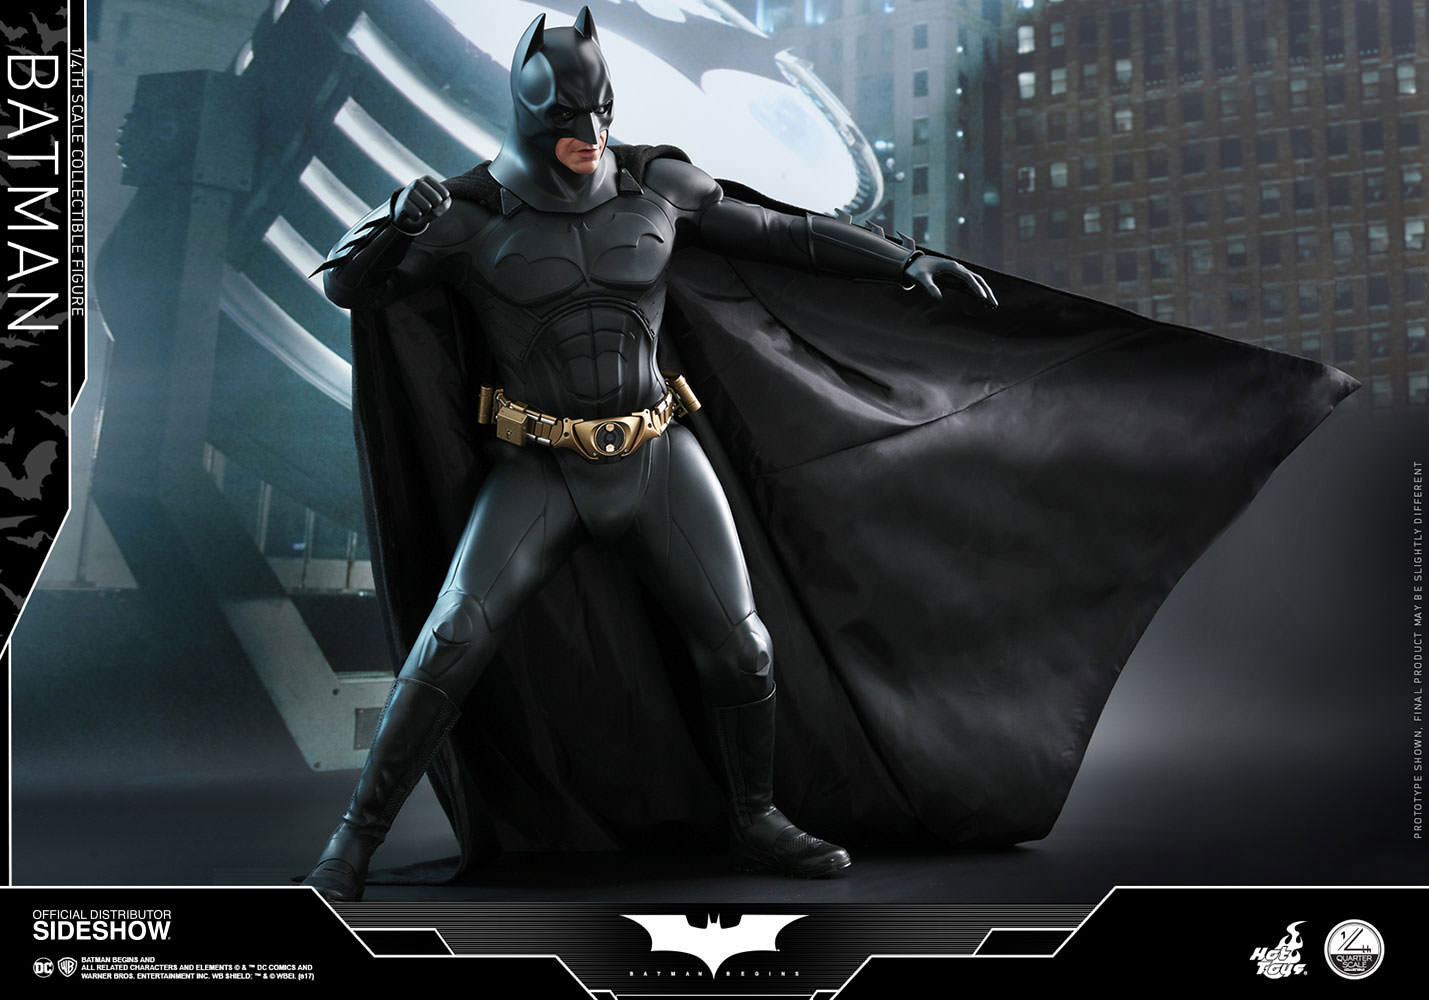 batman-begins-hot-toys-figure-1